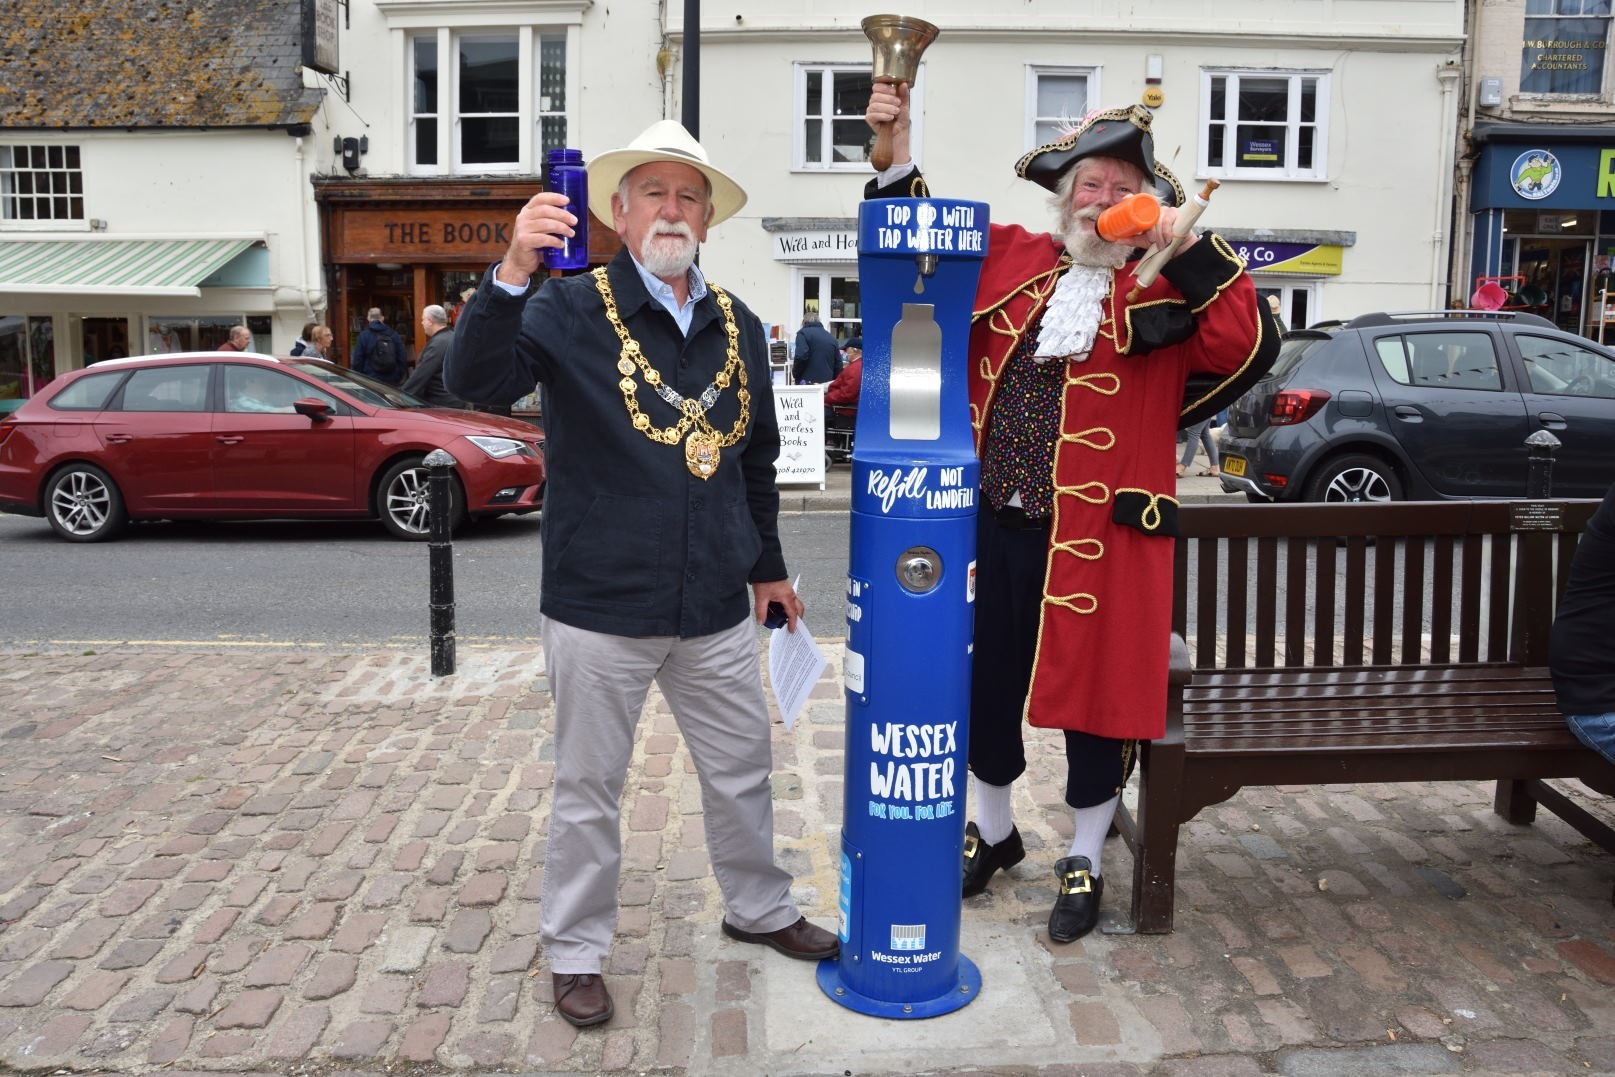 Mayor and town crier open water fountain in Bucky Doo Square | Bridport and Lyme Regis News